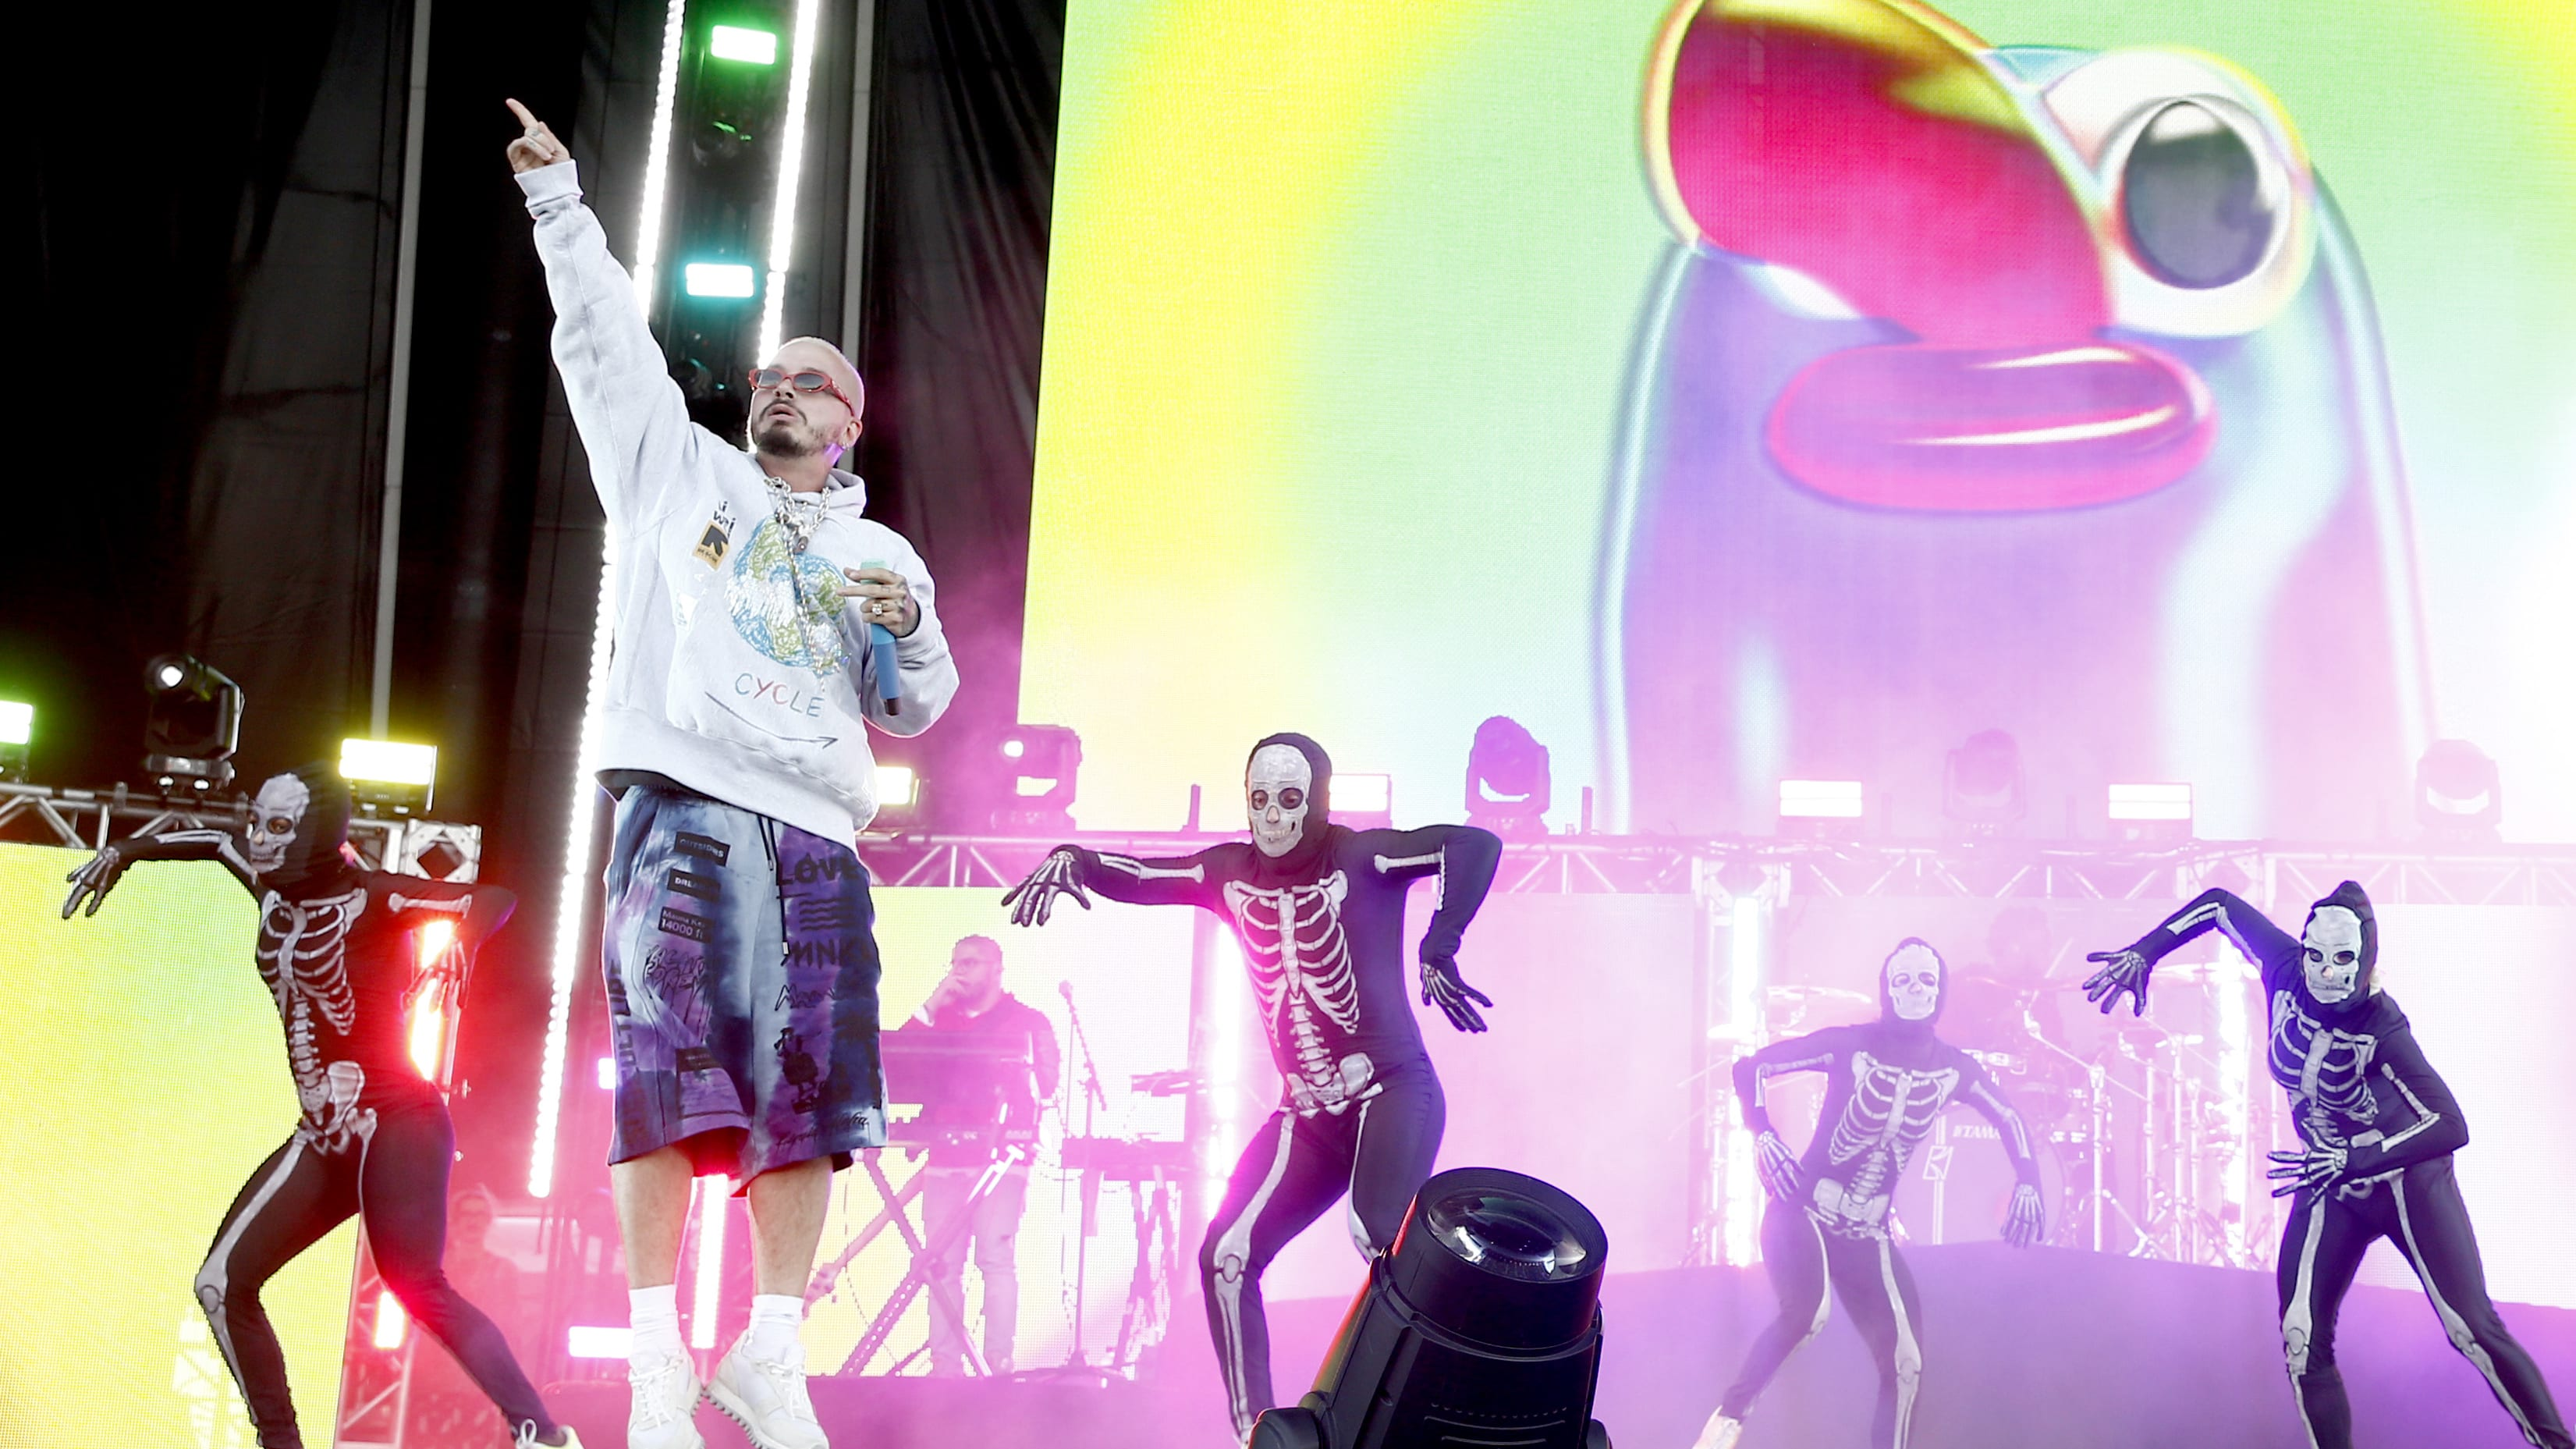 VIRGINIA BEACH, VIRGINIA - APRIL 27: J Balvin performs onstage at SOMETHING IN THE WATER - Day 2 on April 27, 2019 in Virginia Beach City. (Photo by Brian Ach/Getty Images for Something in the Water)